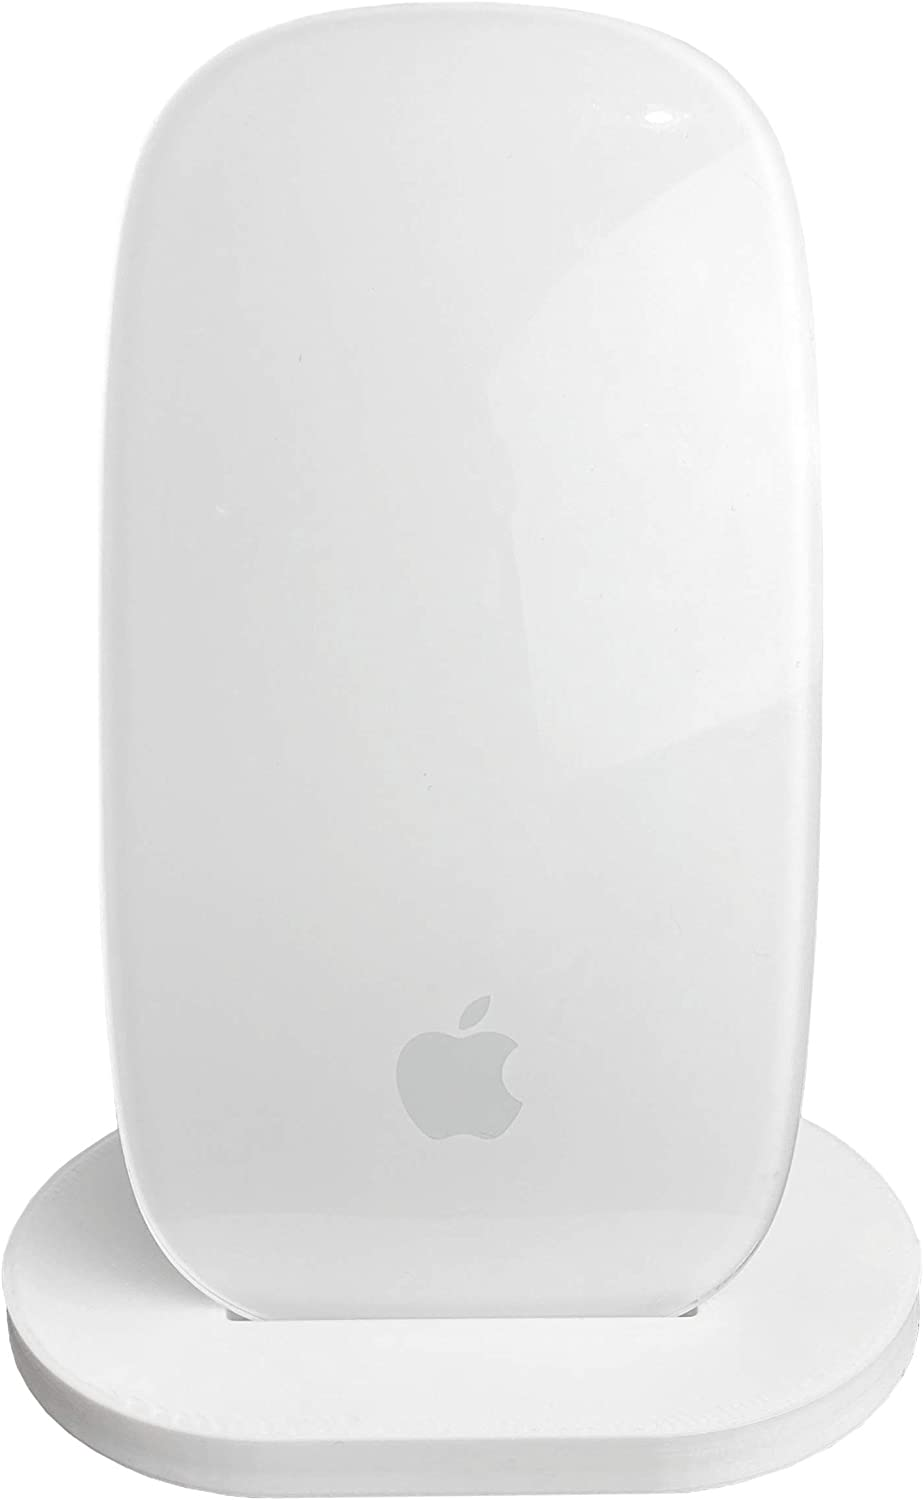 Magic Stand - Mouse Stand for Apple Magic Mouse 1 & 2, Includes Access Port for Charging, Minimal & Sleek Design